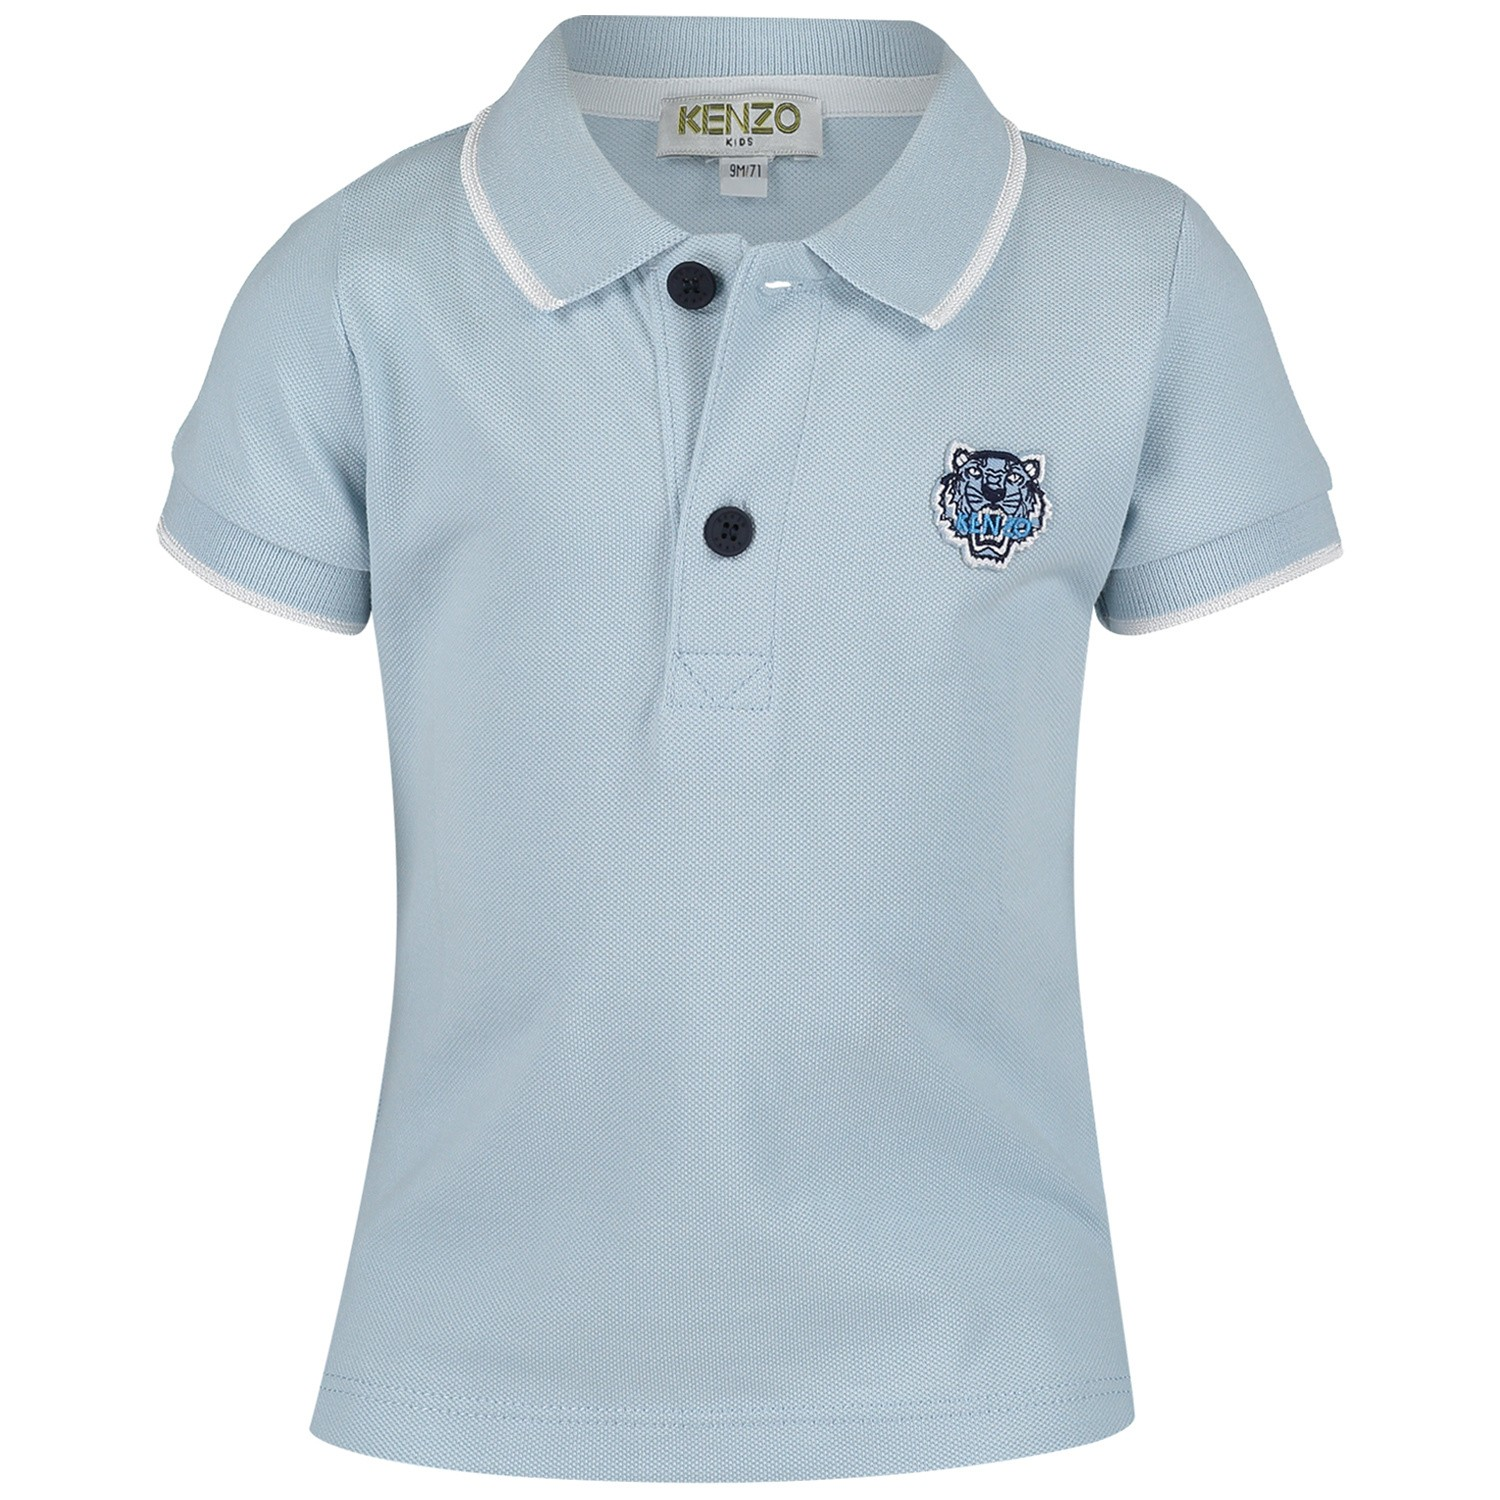 Picture of Kenzo KN11517 baby poloshirt light blue